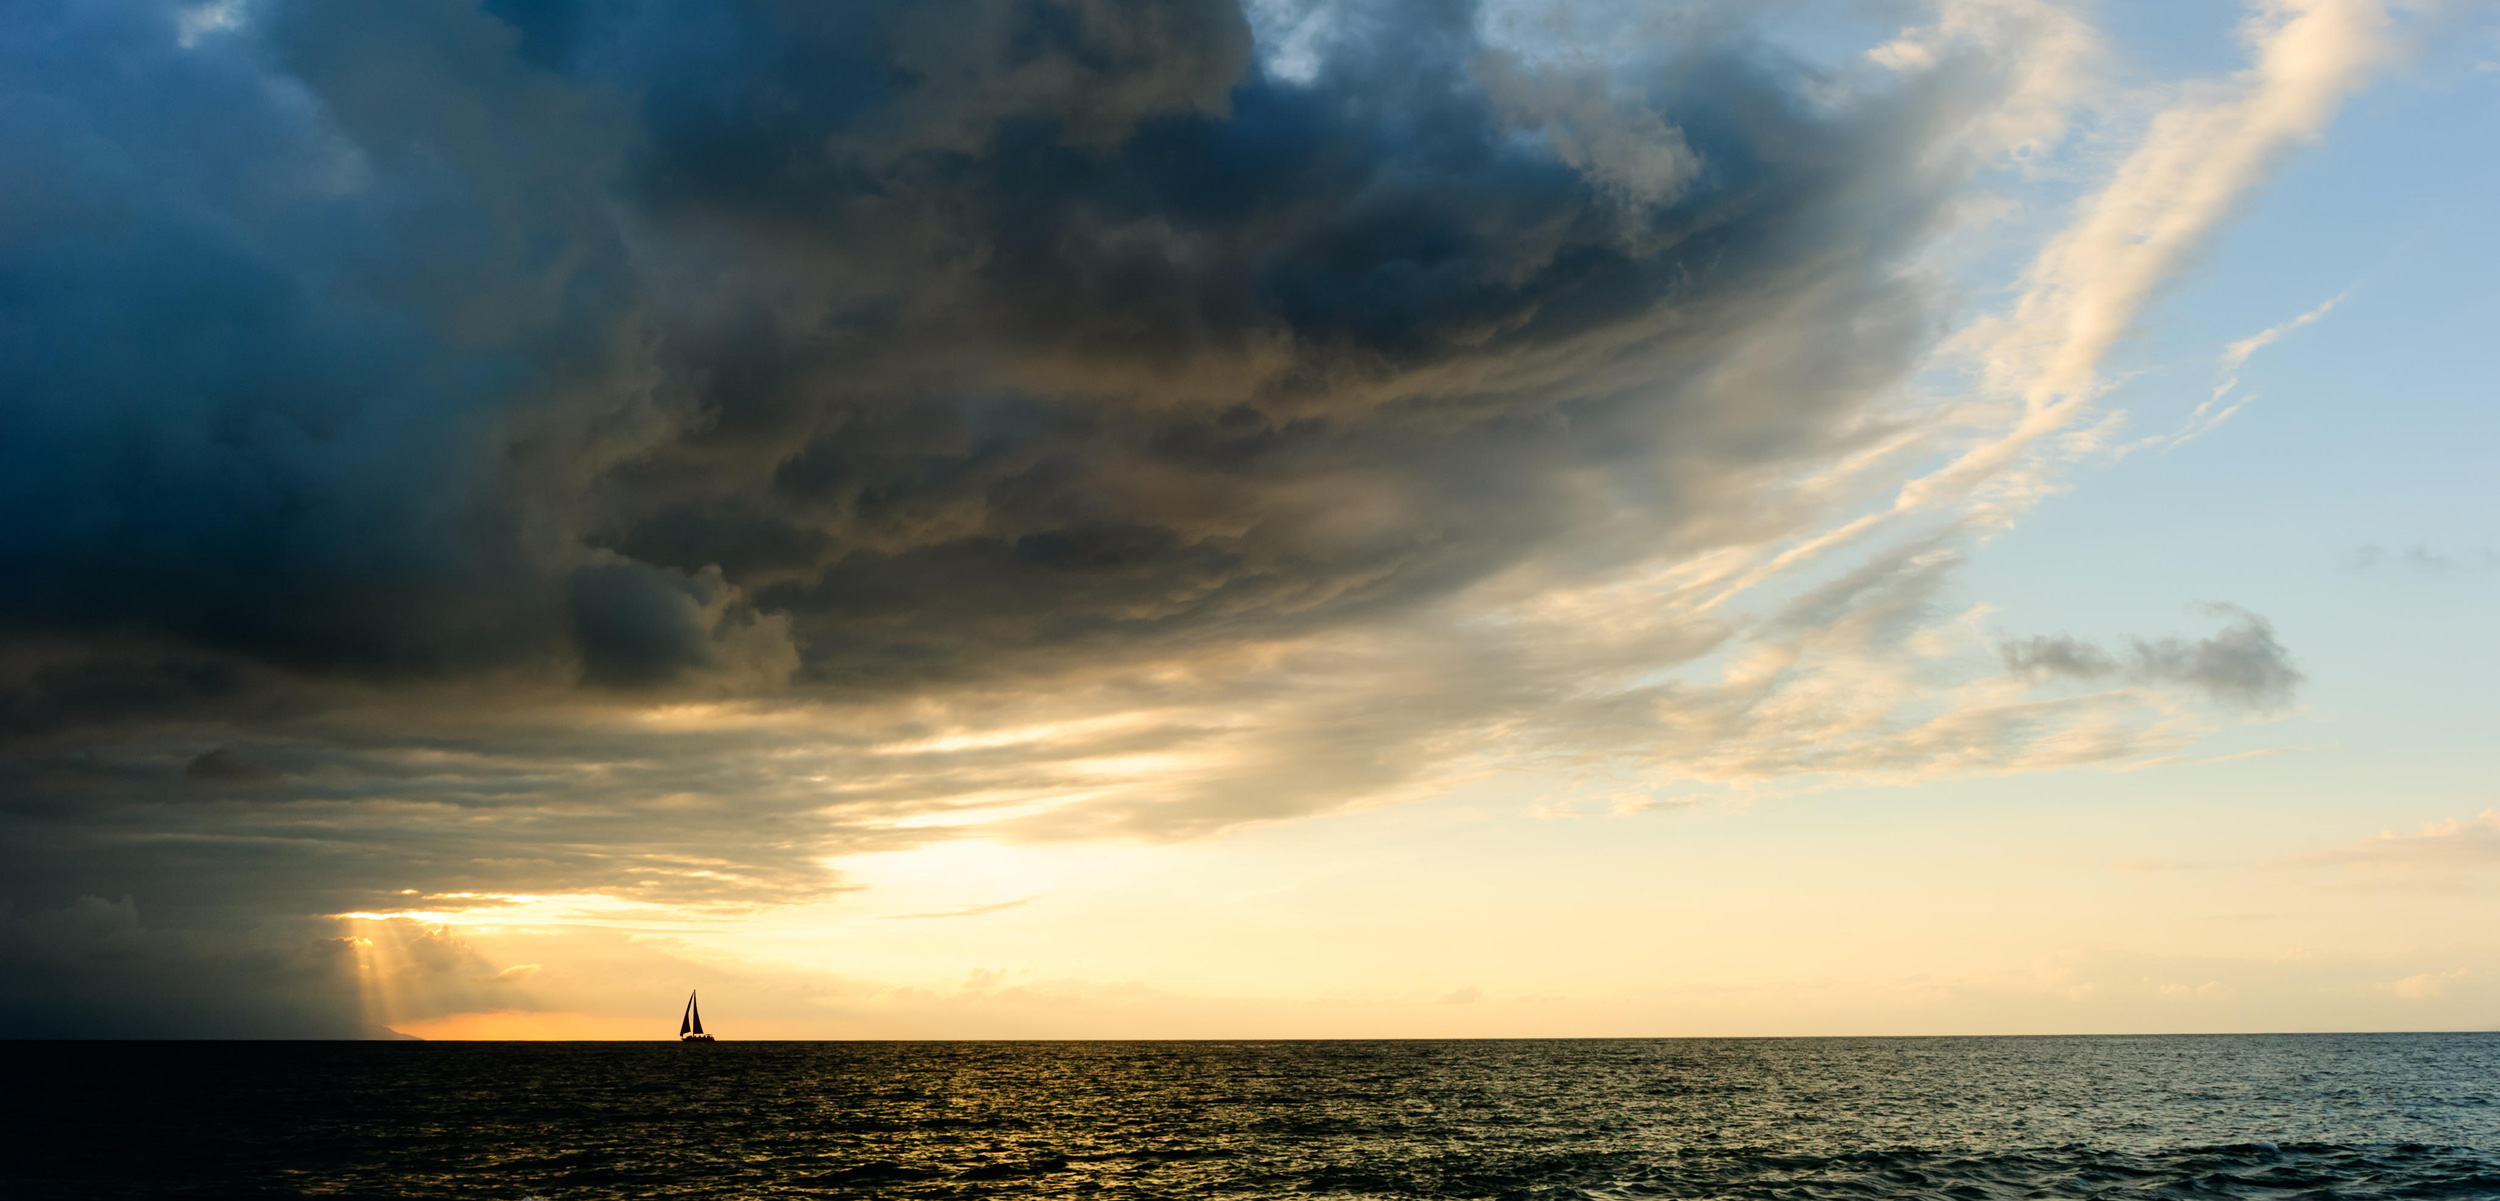 storm clouds and clear sky over ocean